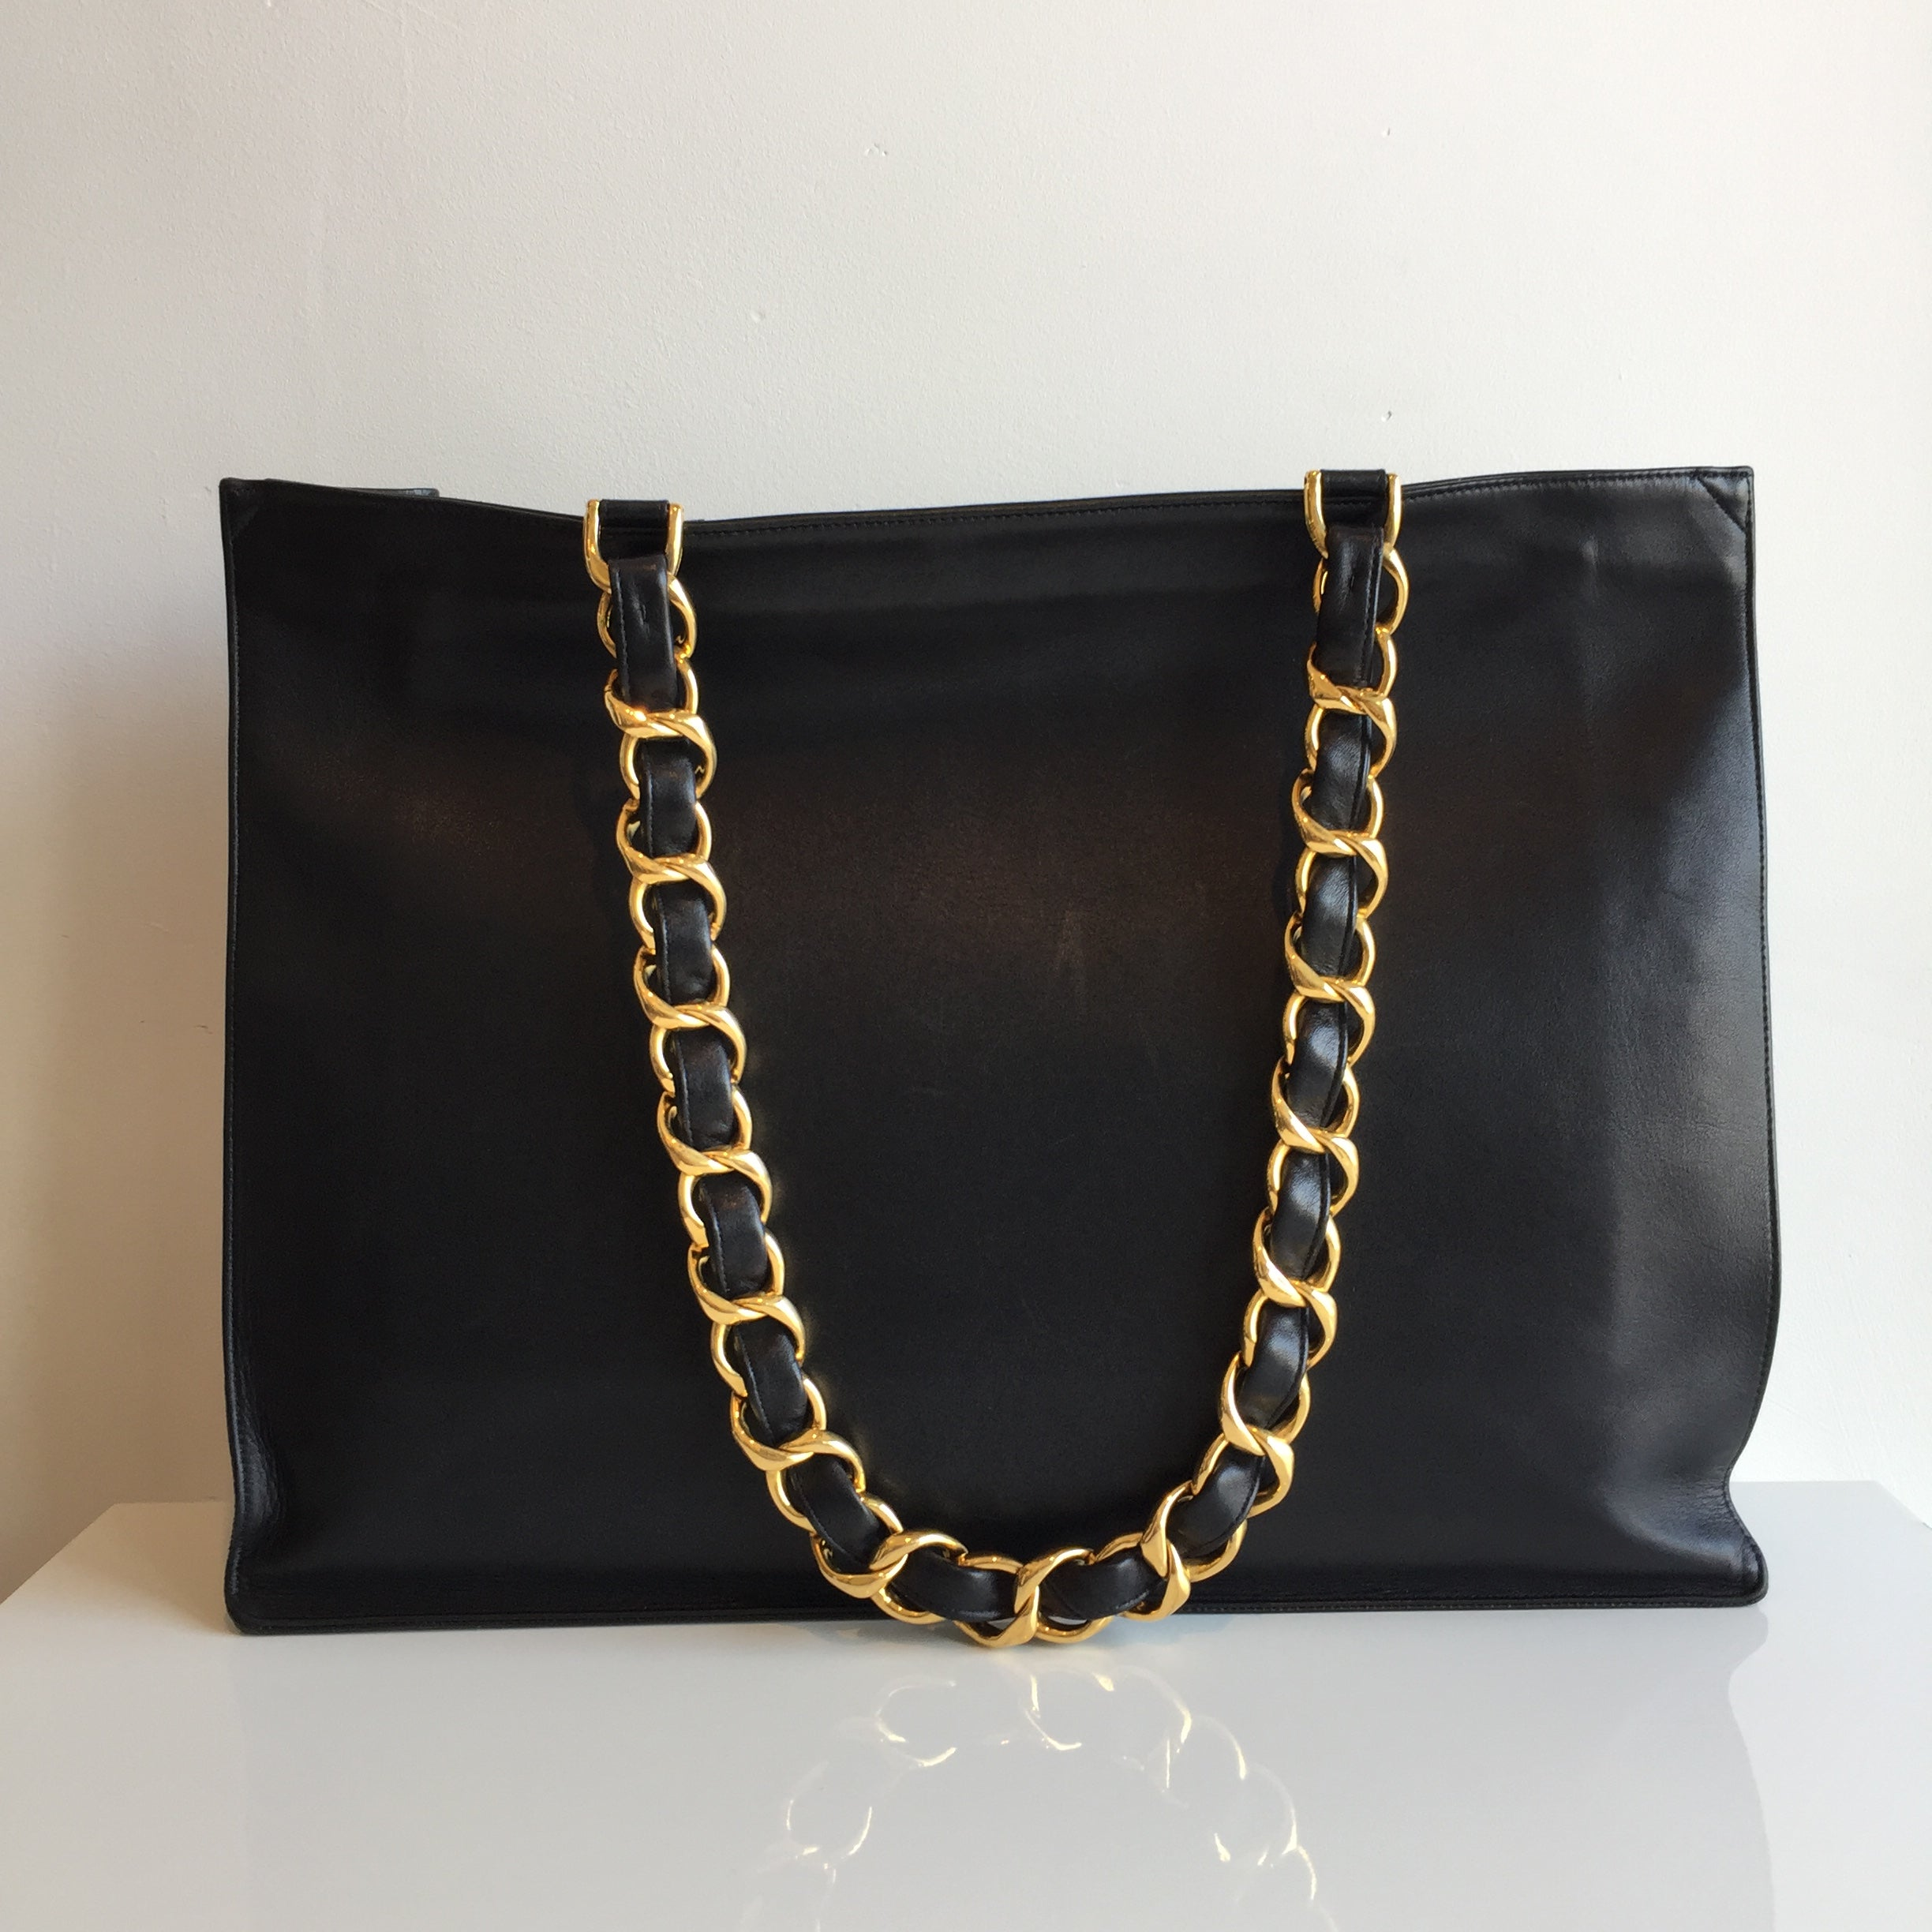 Authentic CHANEL XL Black Tote